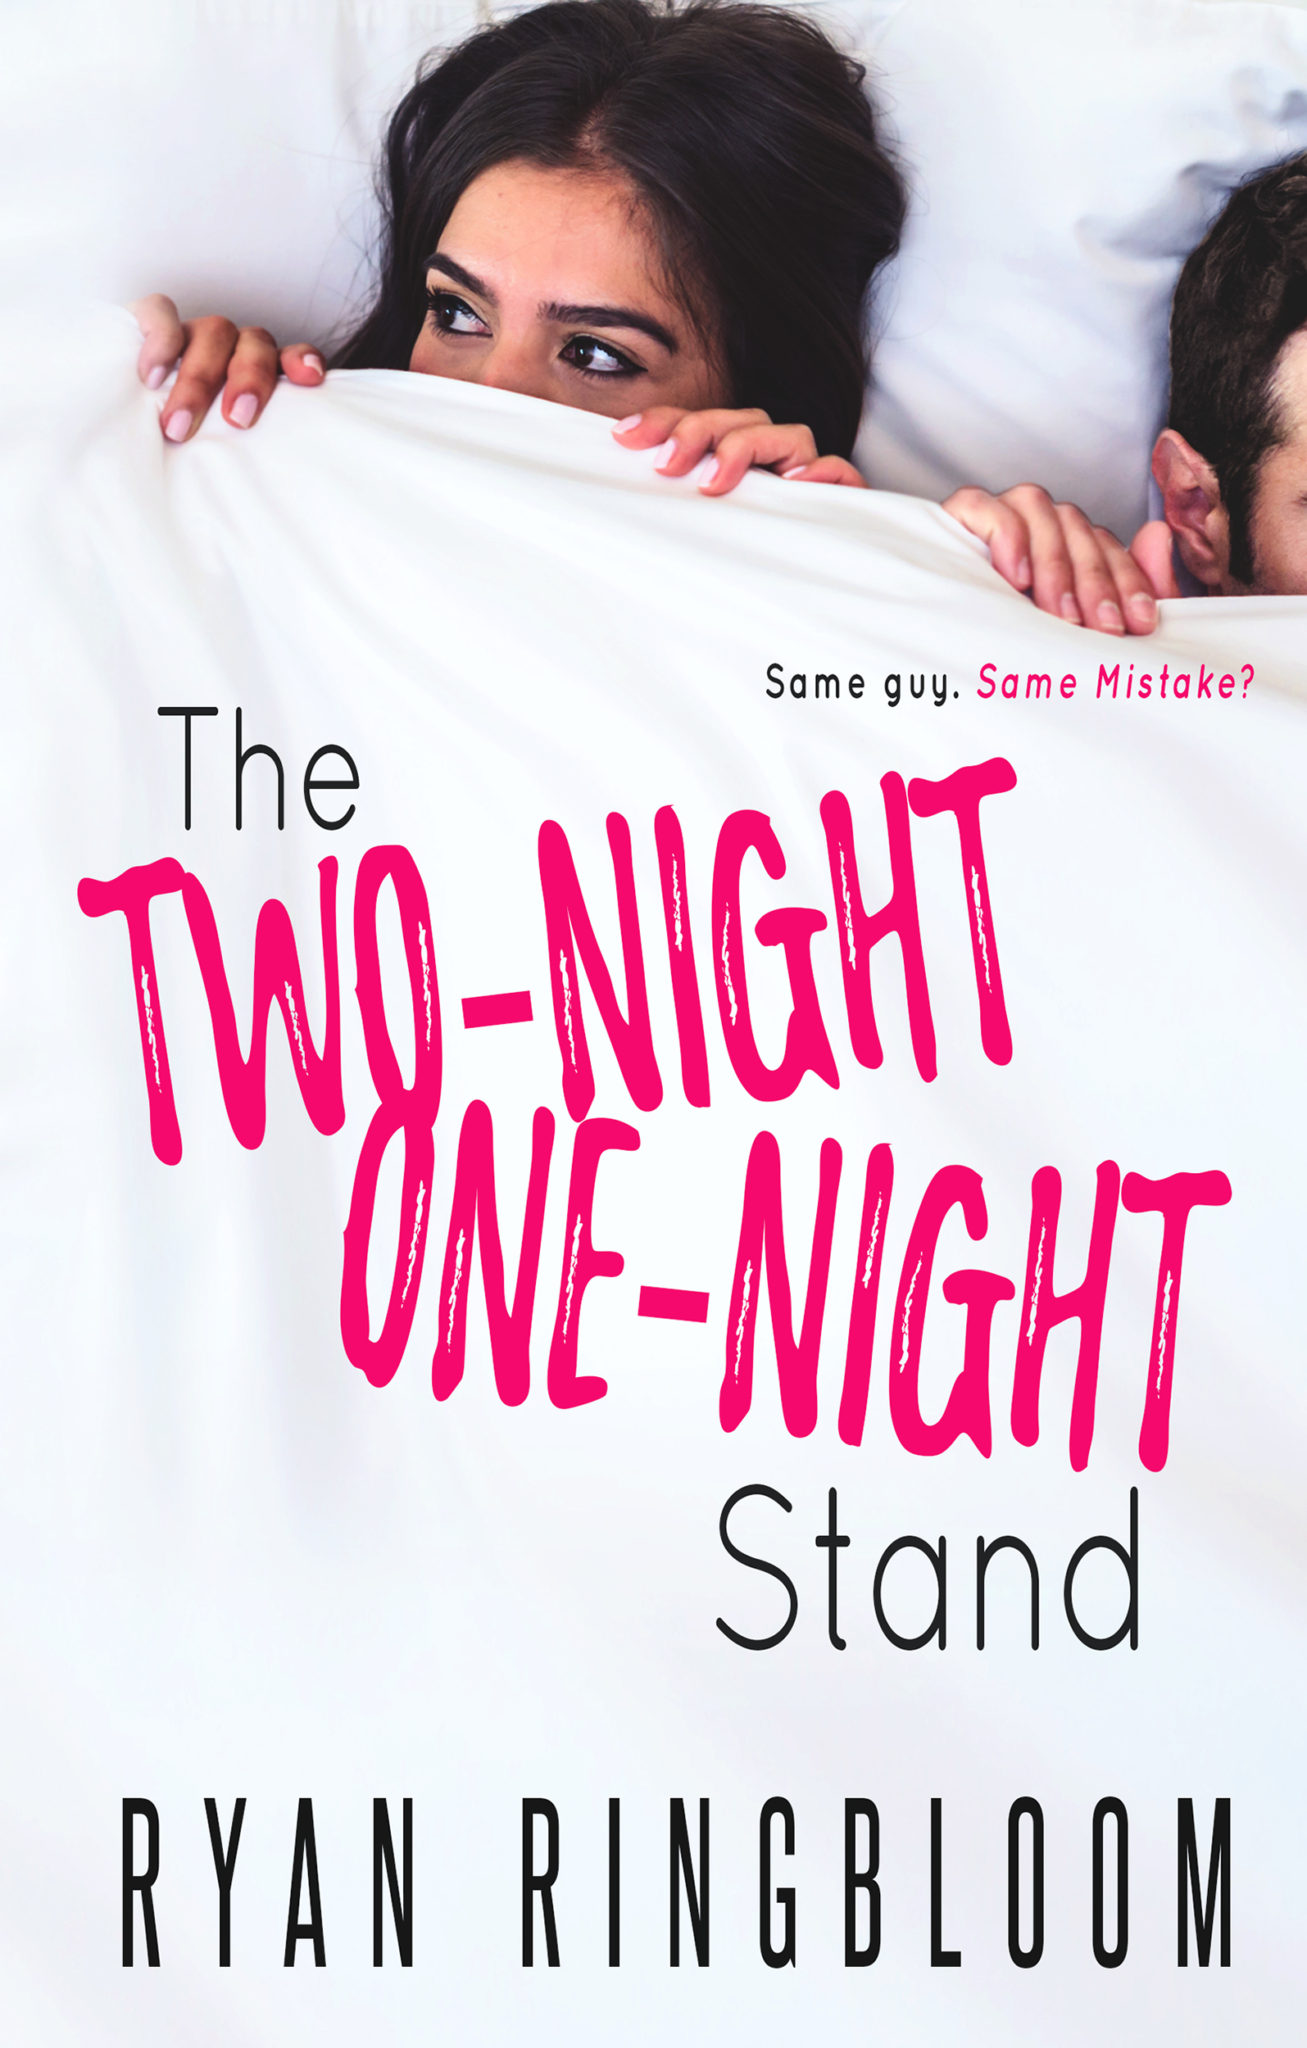 The Two-Night One-Night Stand by Ryan Ringbloom